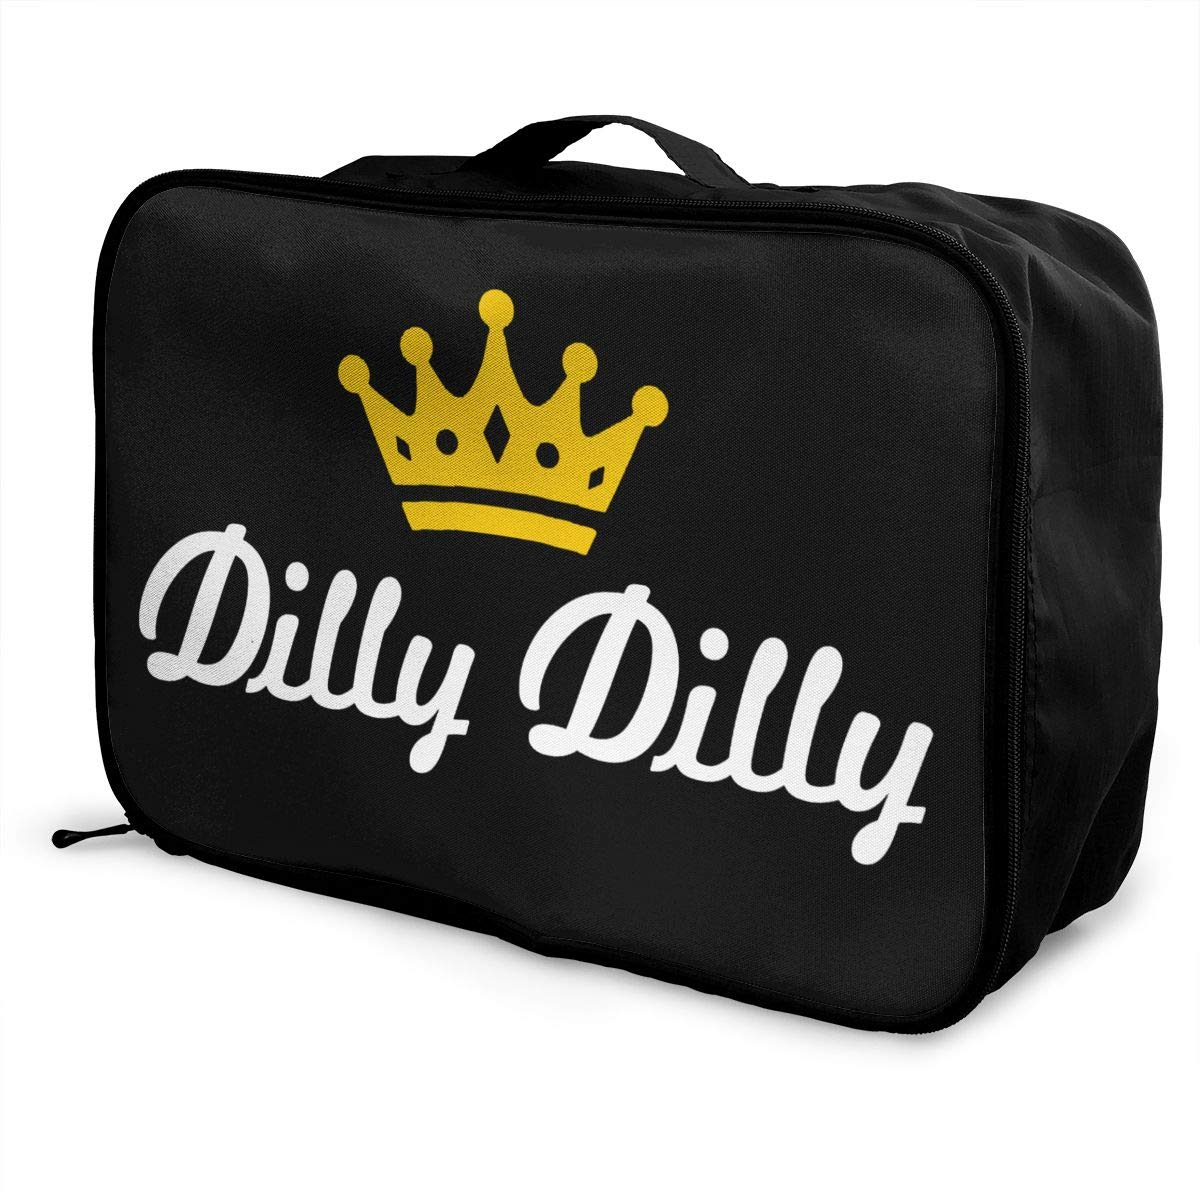 Dilly Dilly Travel Bag Men Women 3D Print Pattern Gift Portable Waterproof Oxford Cloth Bags